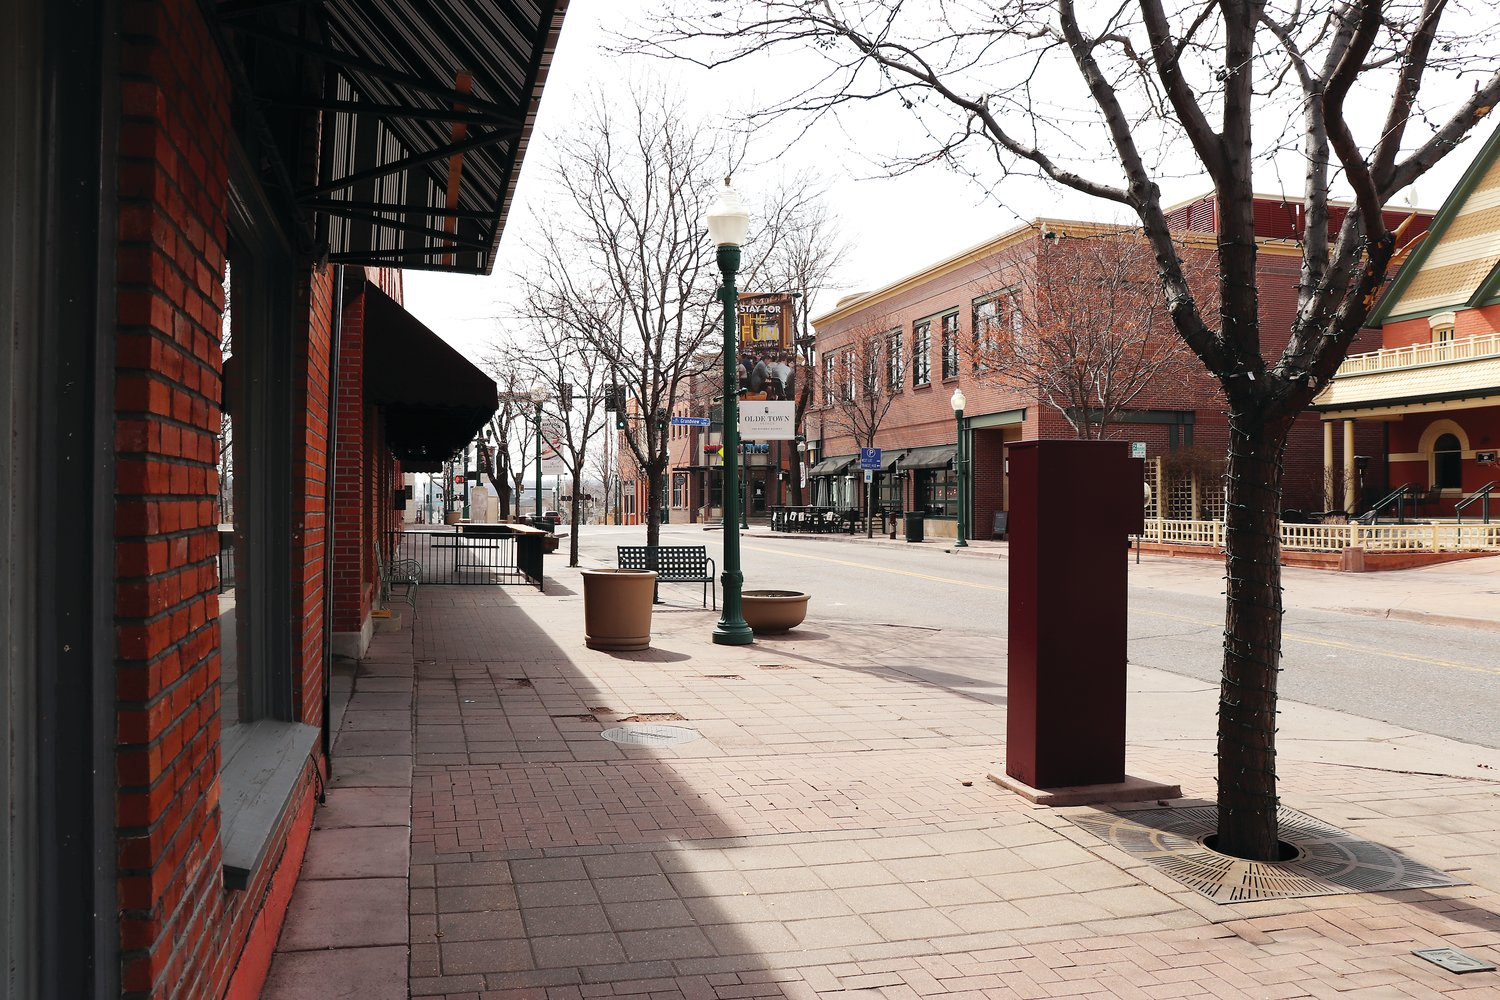 Olde Wadsworth Boulevard and the other streets of Olde Town were empty at lunchtime on St. Patrick's Day, after the state ordered restaurants and bars to suspend sit-down service. Outdoor seating, and loosening restrictions have since helped bring patrons back to the area.